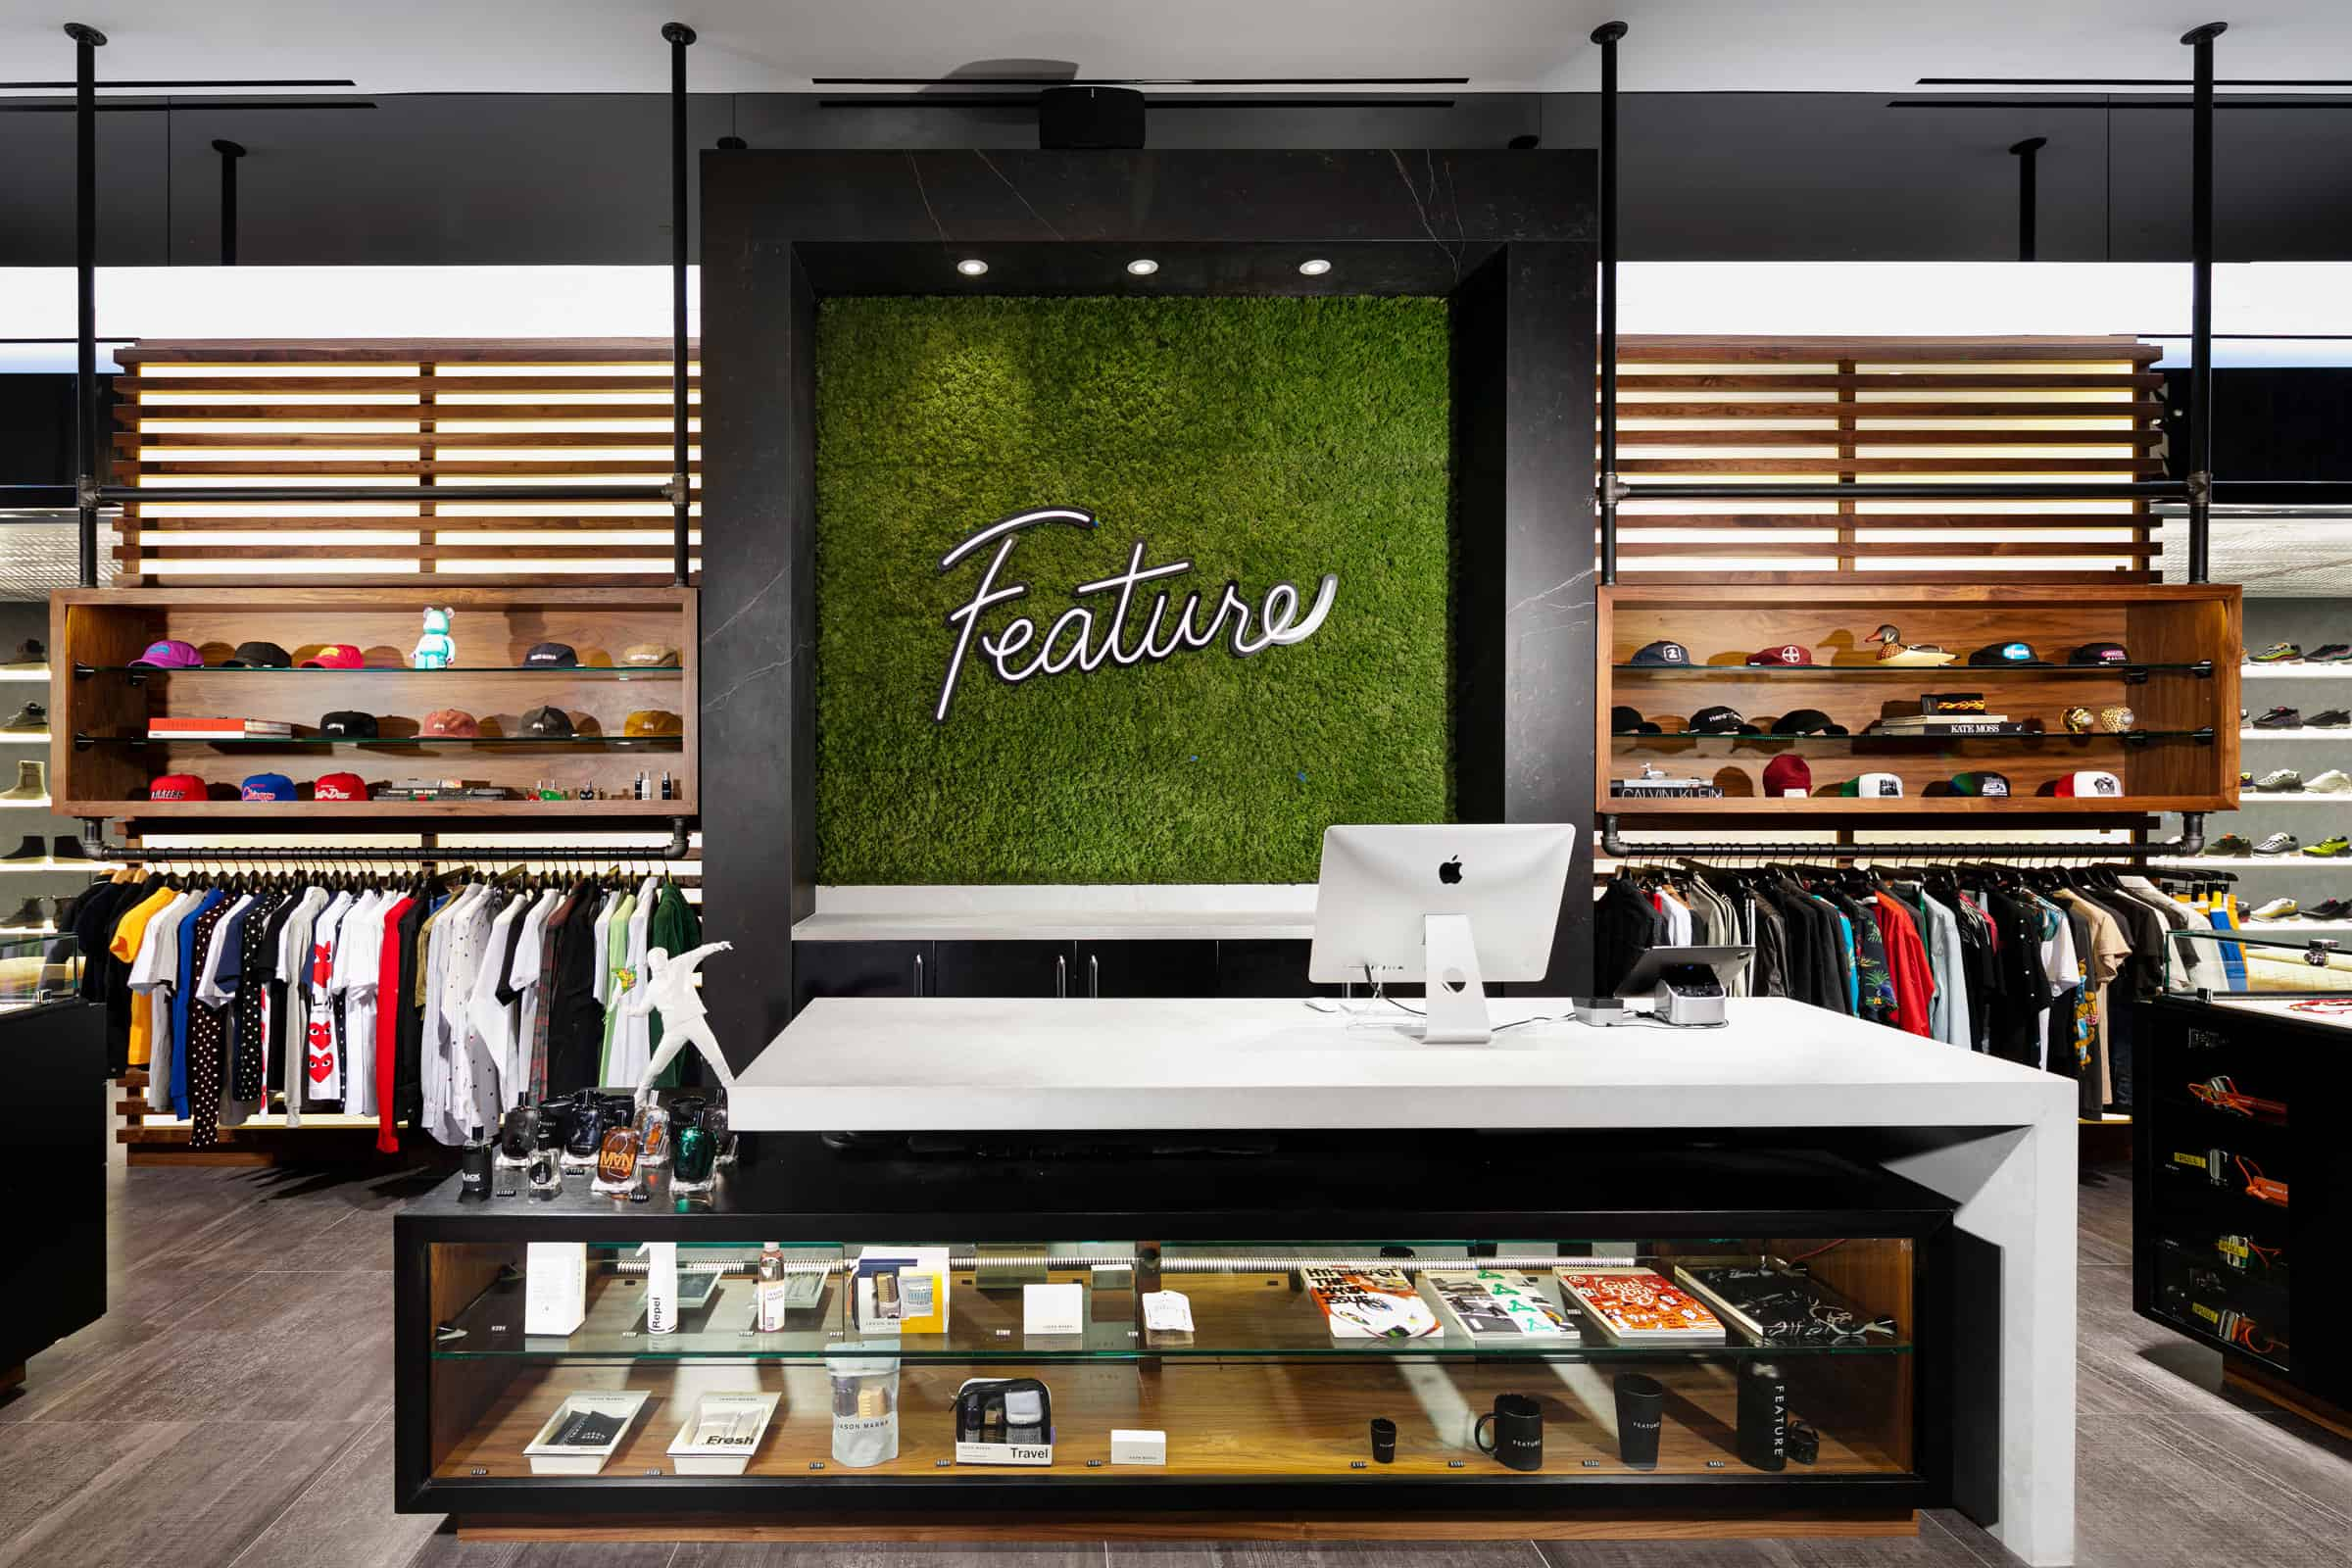 The Impact of Retail Photography on Stores